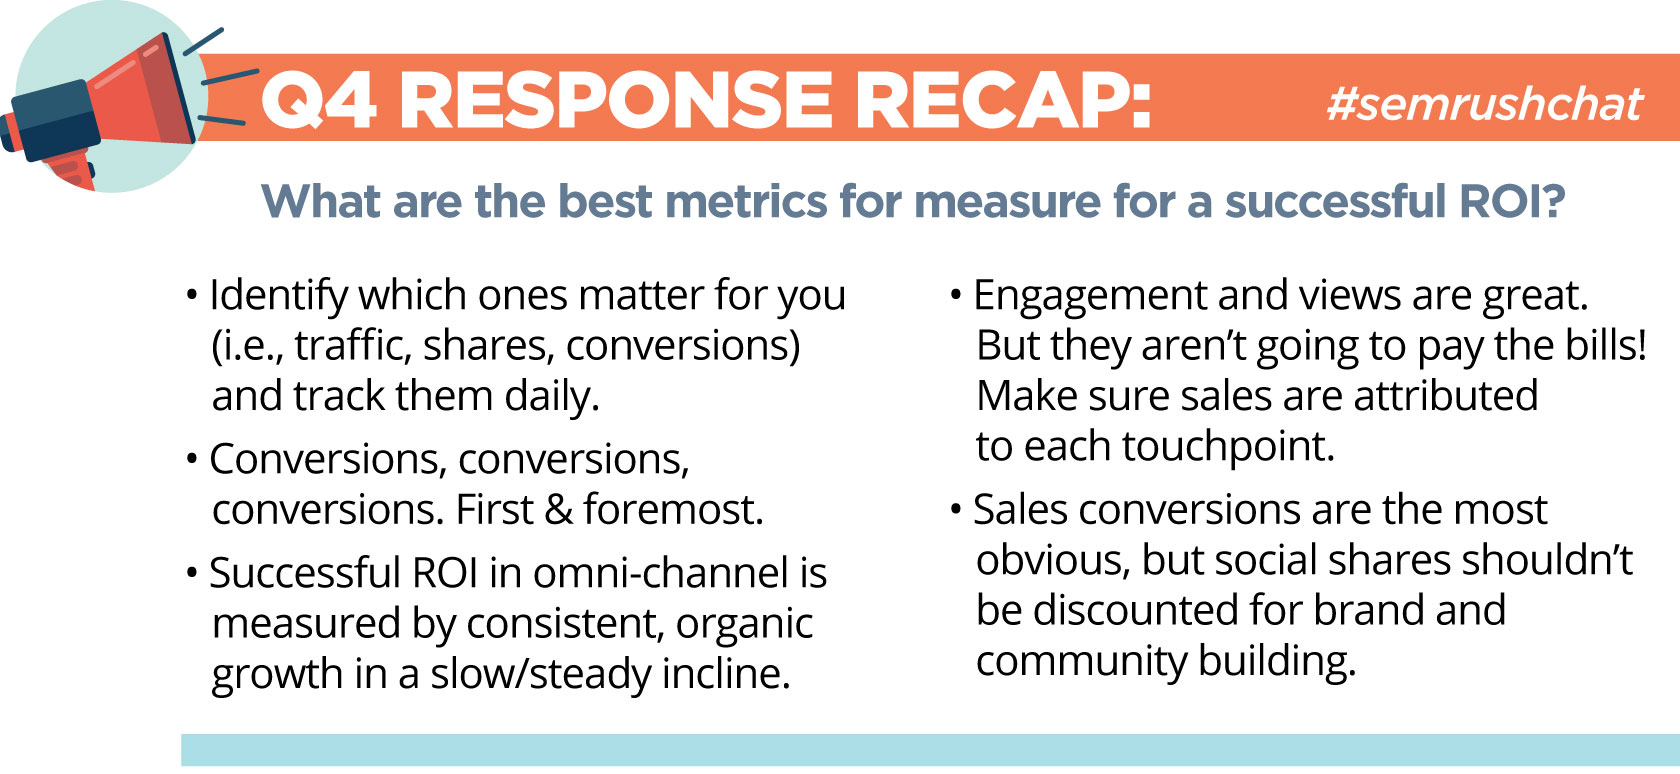 Everything You Need to Know About Omni-Channel Marketing #semrushchat. Image 3